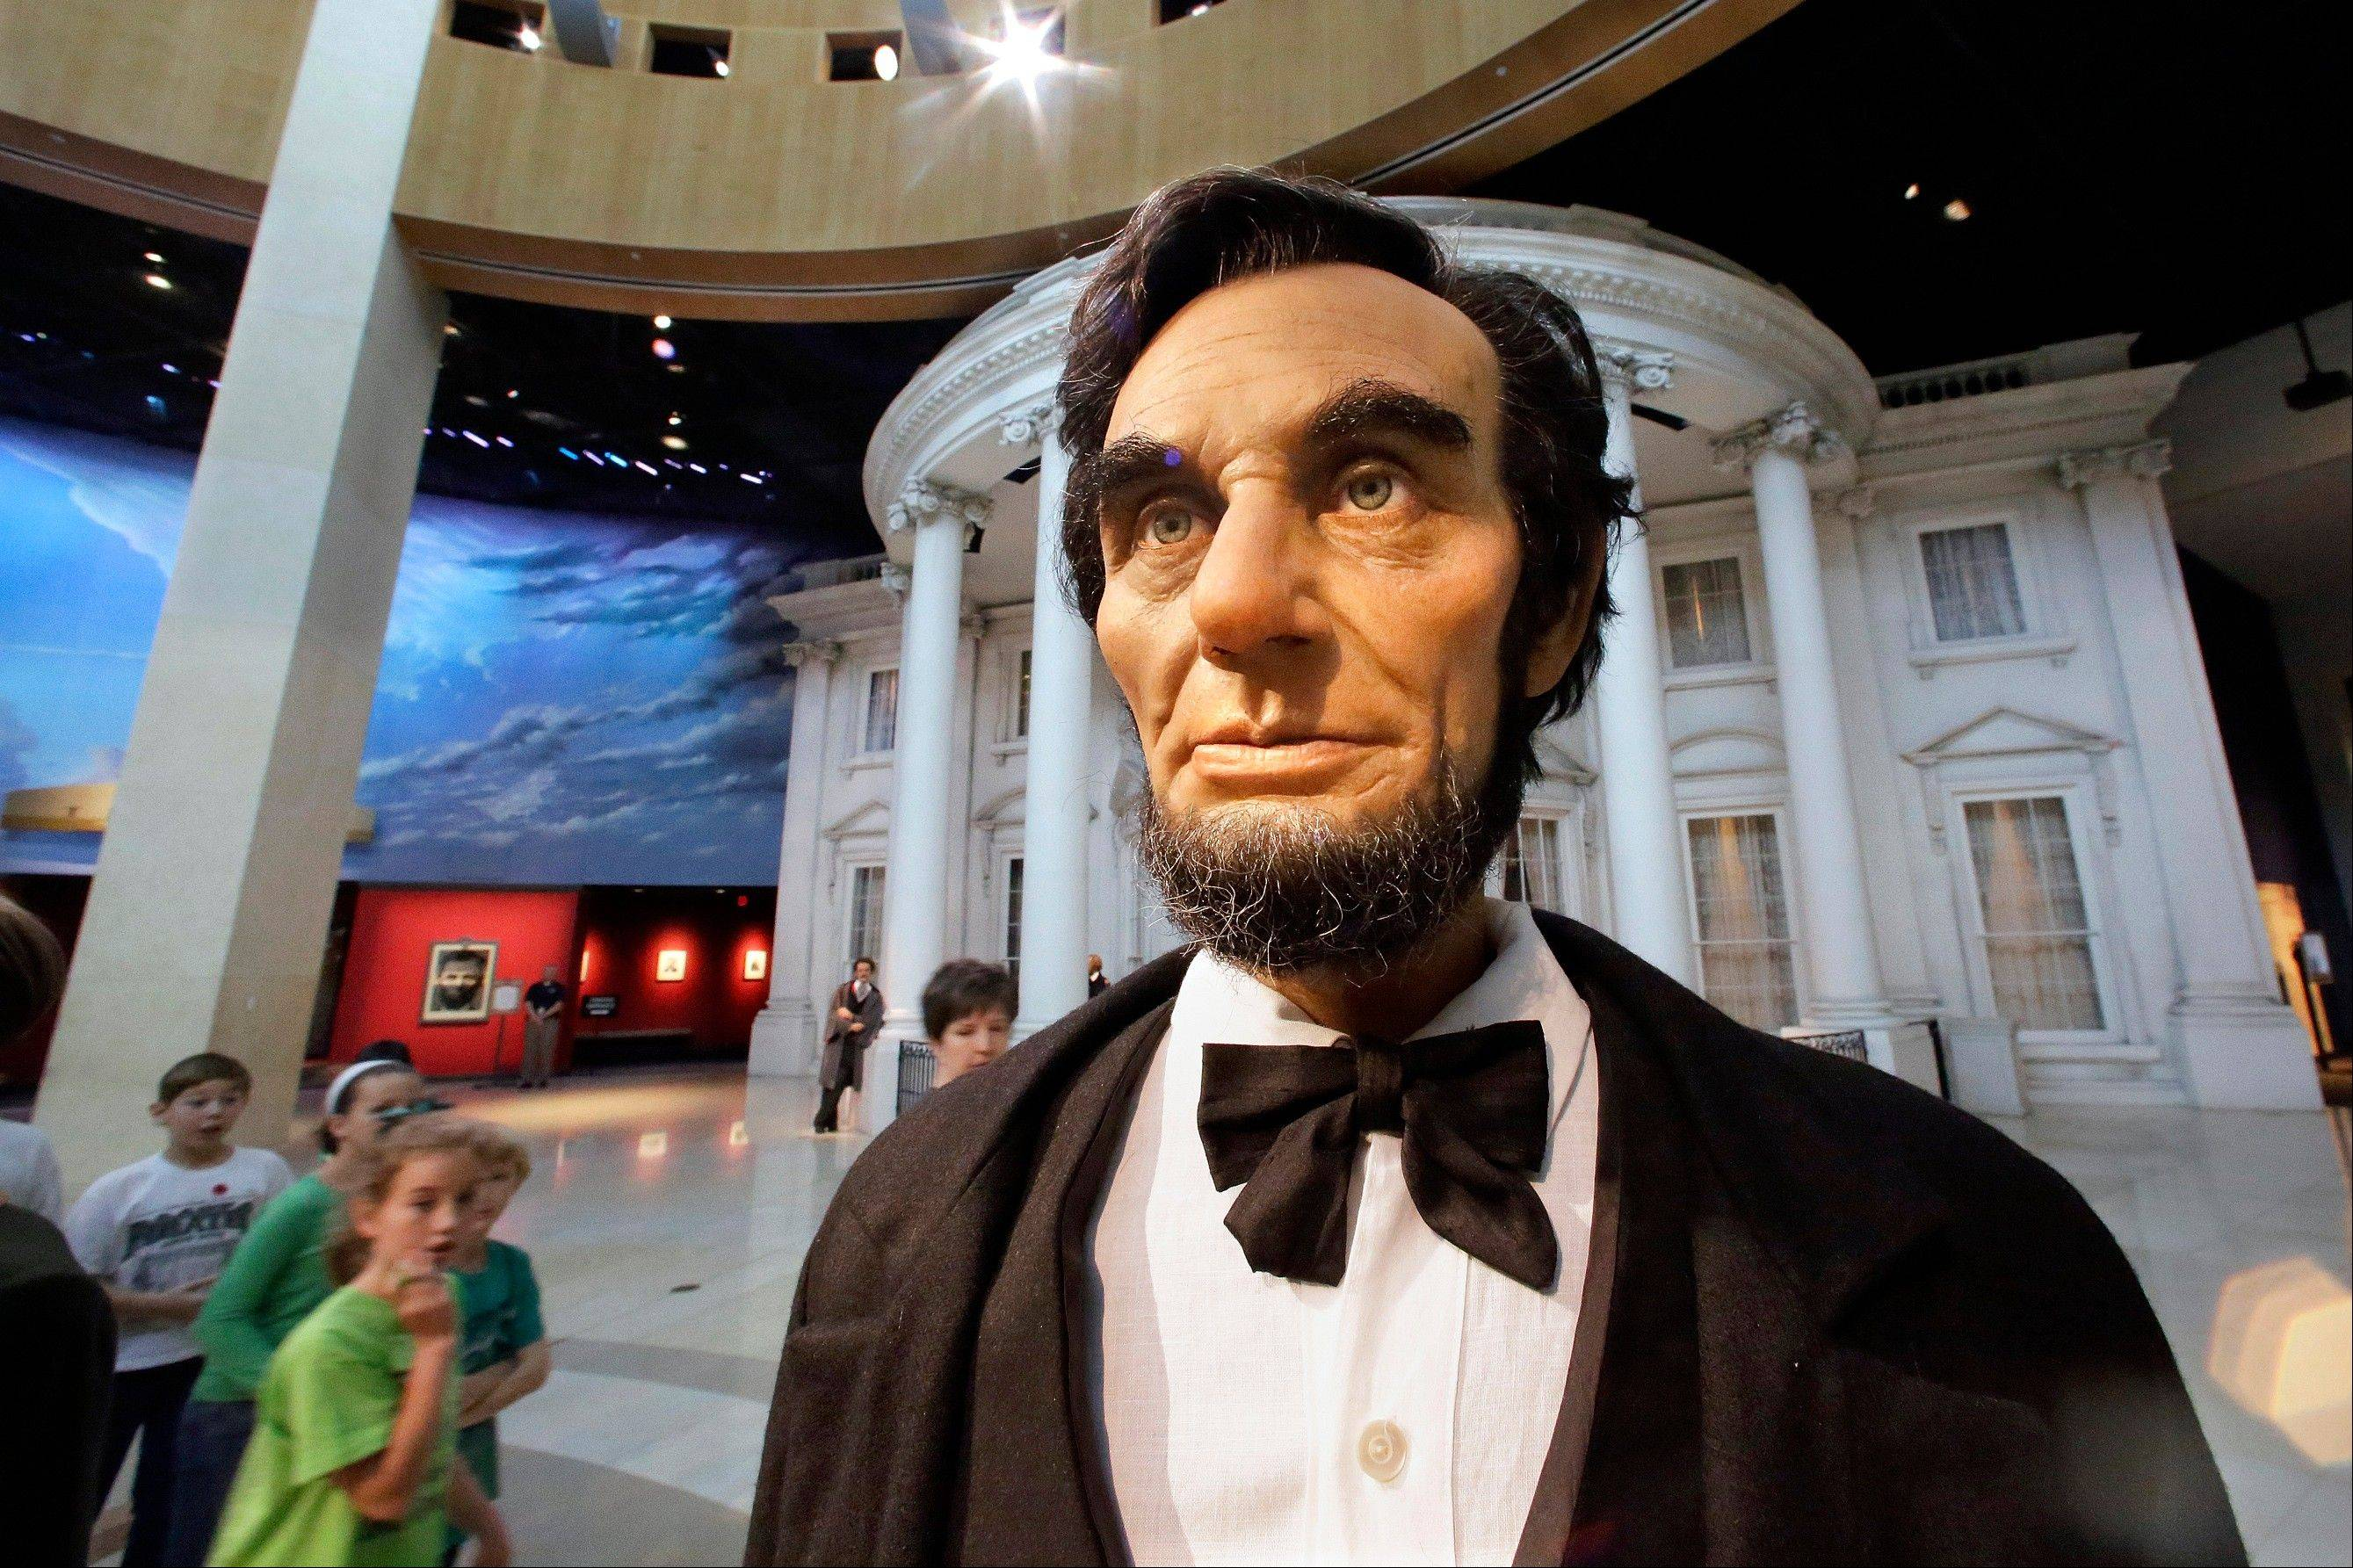 School groups and visitors tour the Abraham Lincoln Presidential Museum and Library Friday.